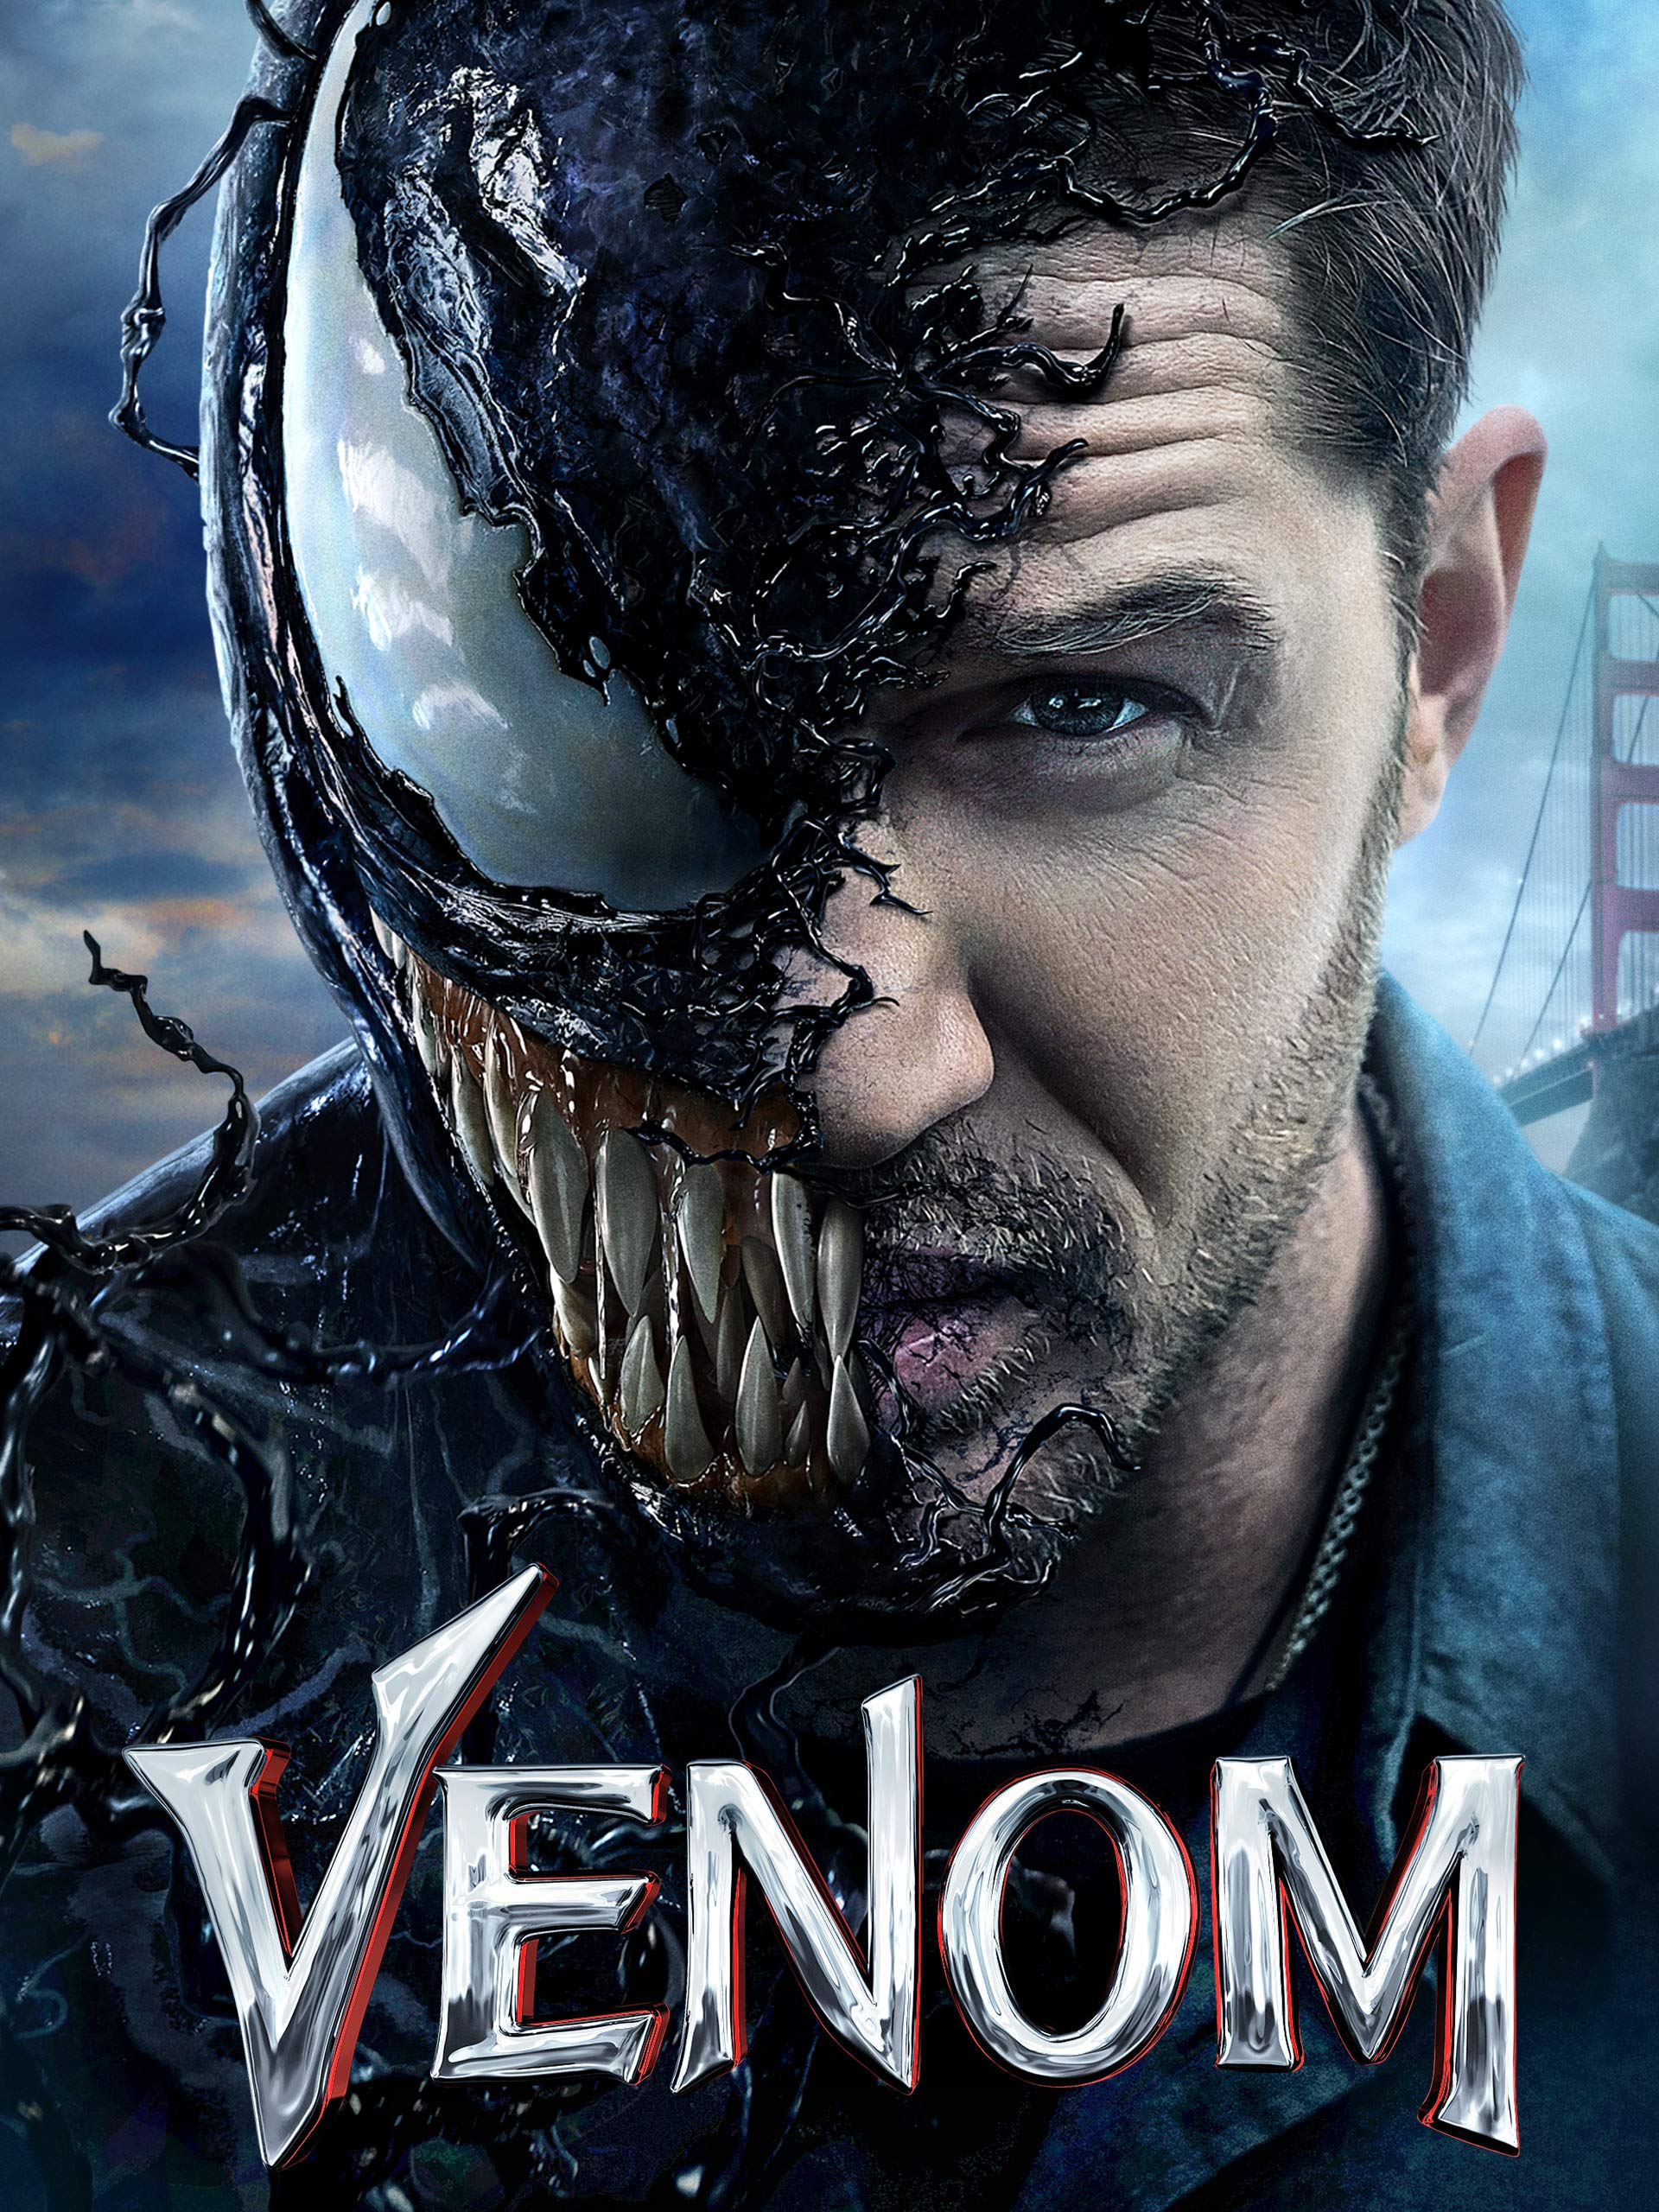 Amazon.com: Venom: Tom Hardy, Michelle Williams, Riz Ahmed, Scott ...